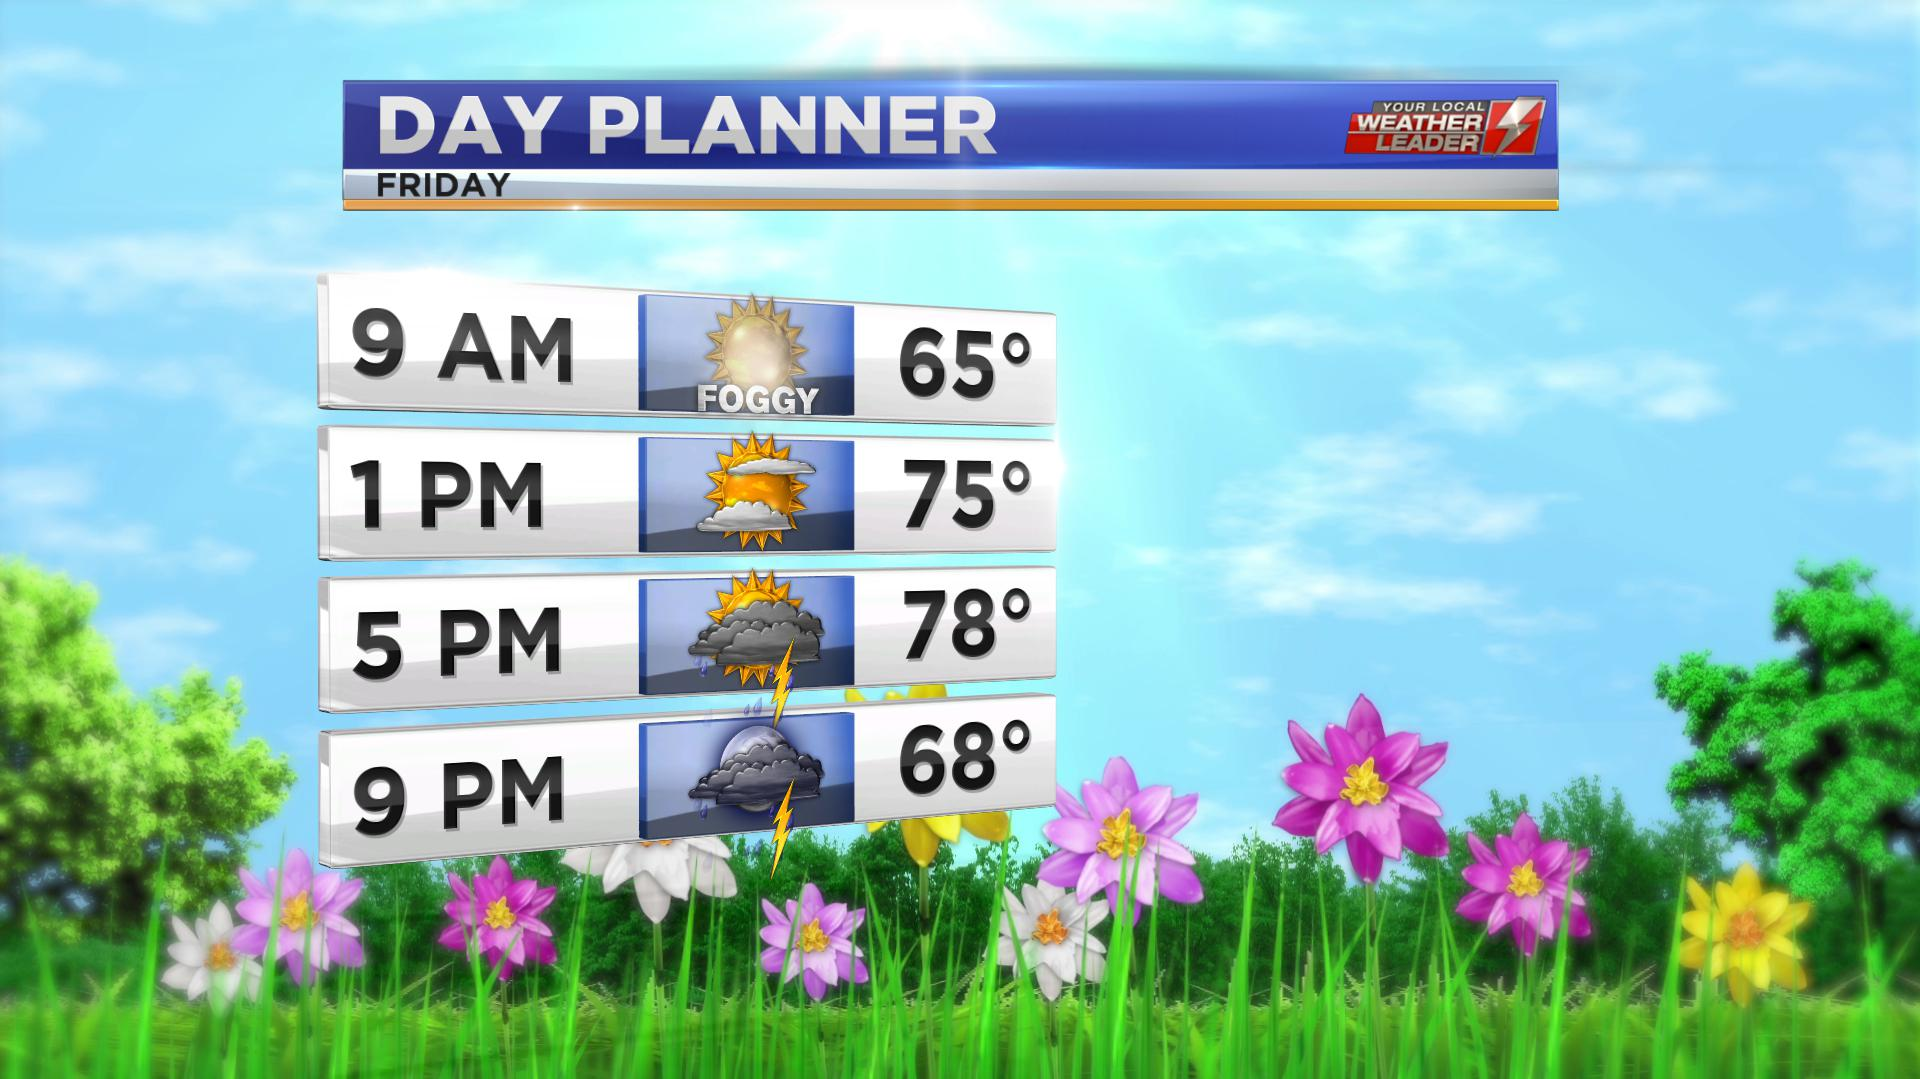 Day Planner Forecast for Friday 03 May 2019